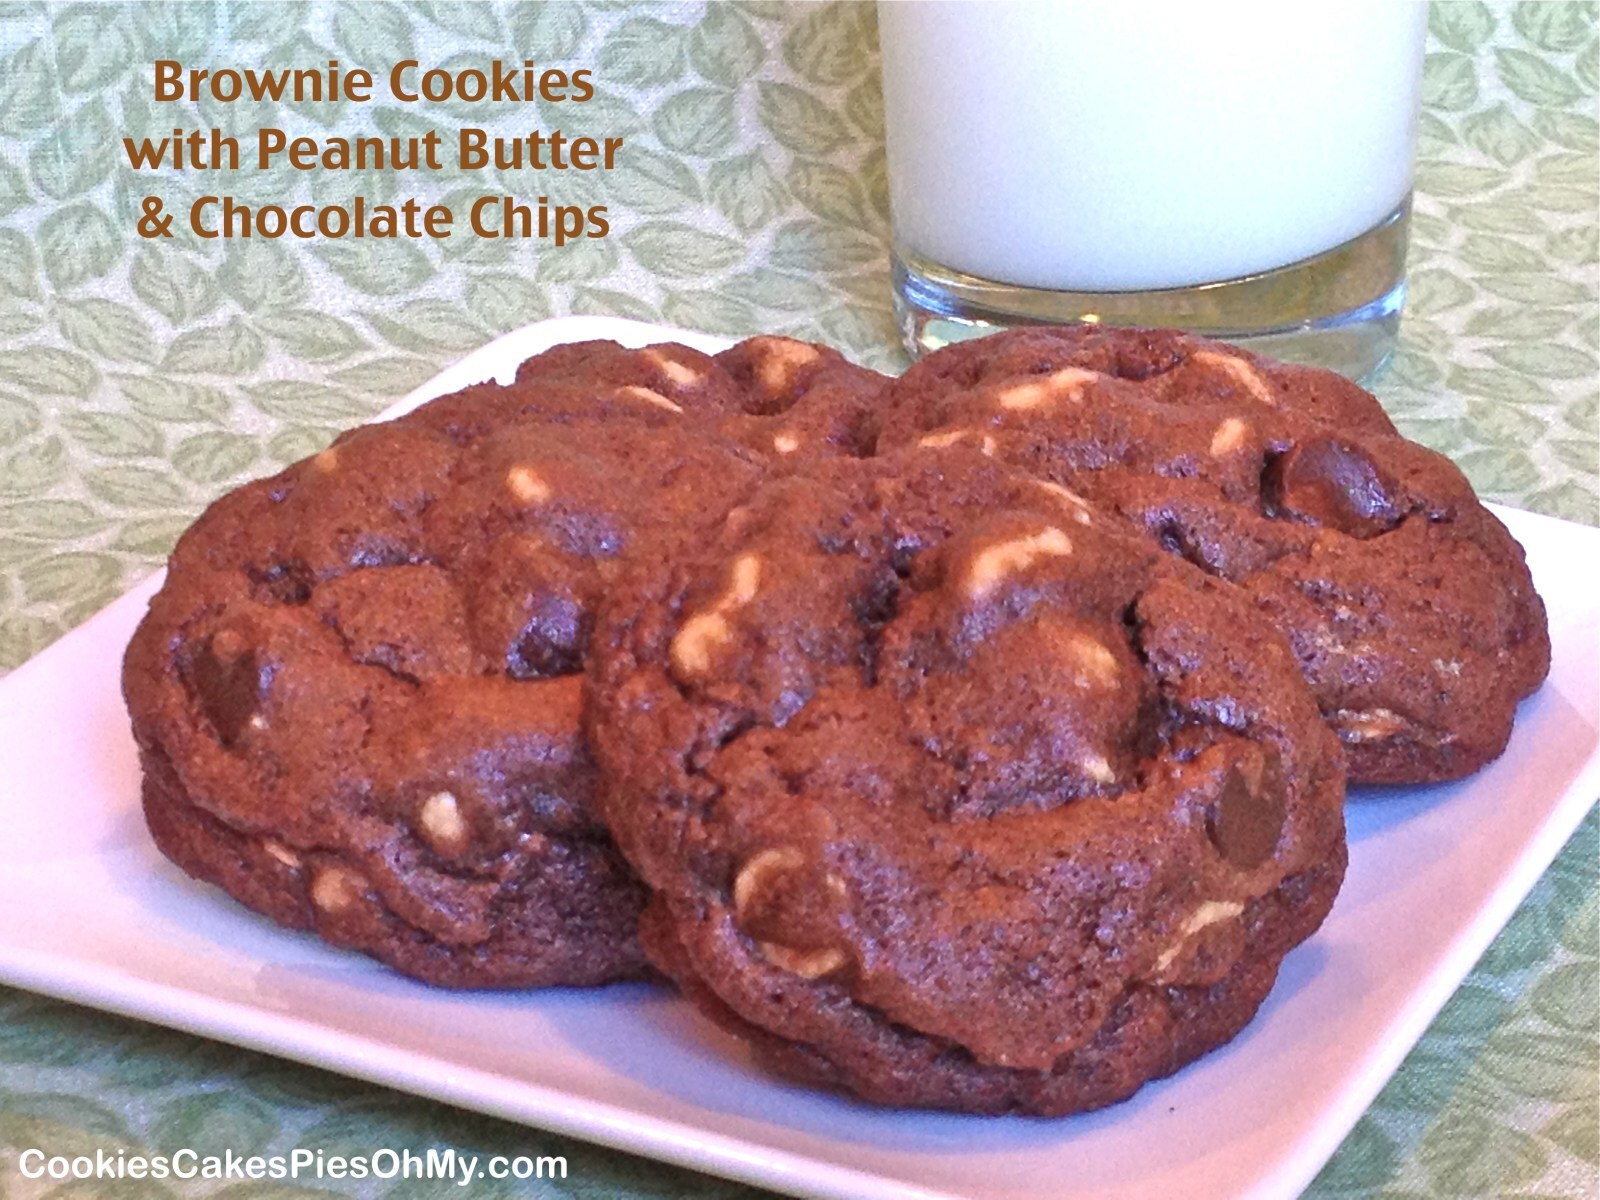 Brownie Cookies with Peanut Butter & Chocolate Chips